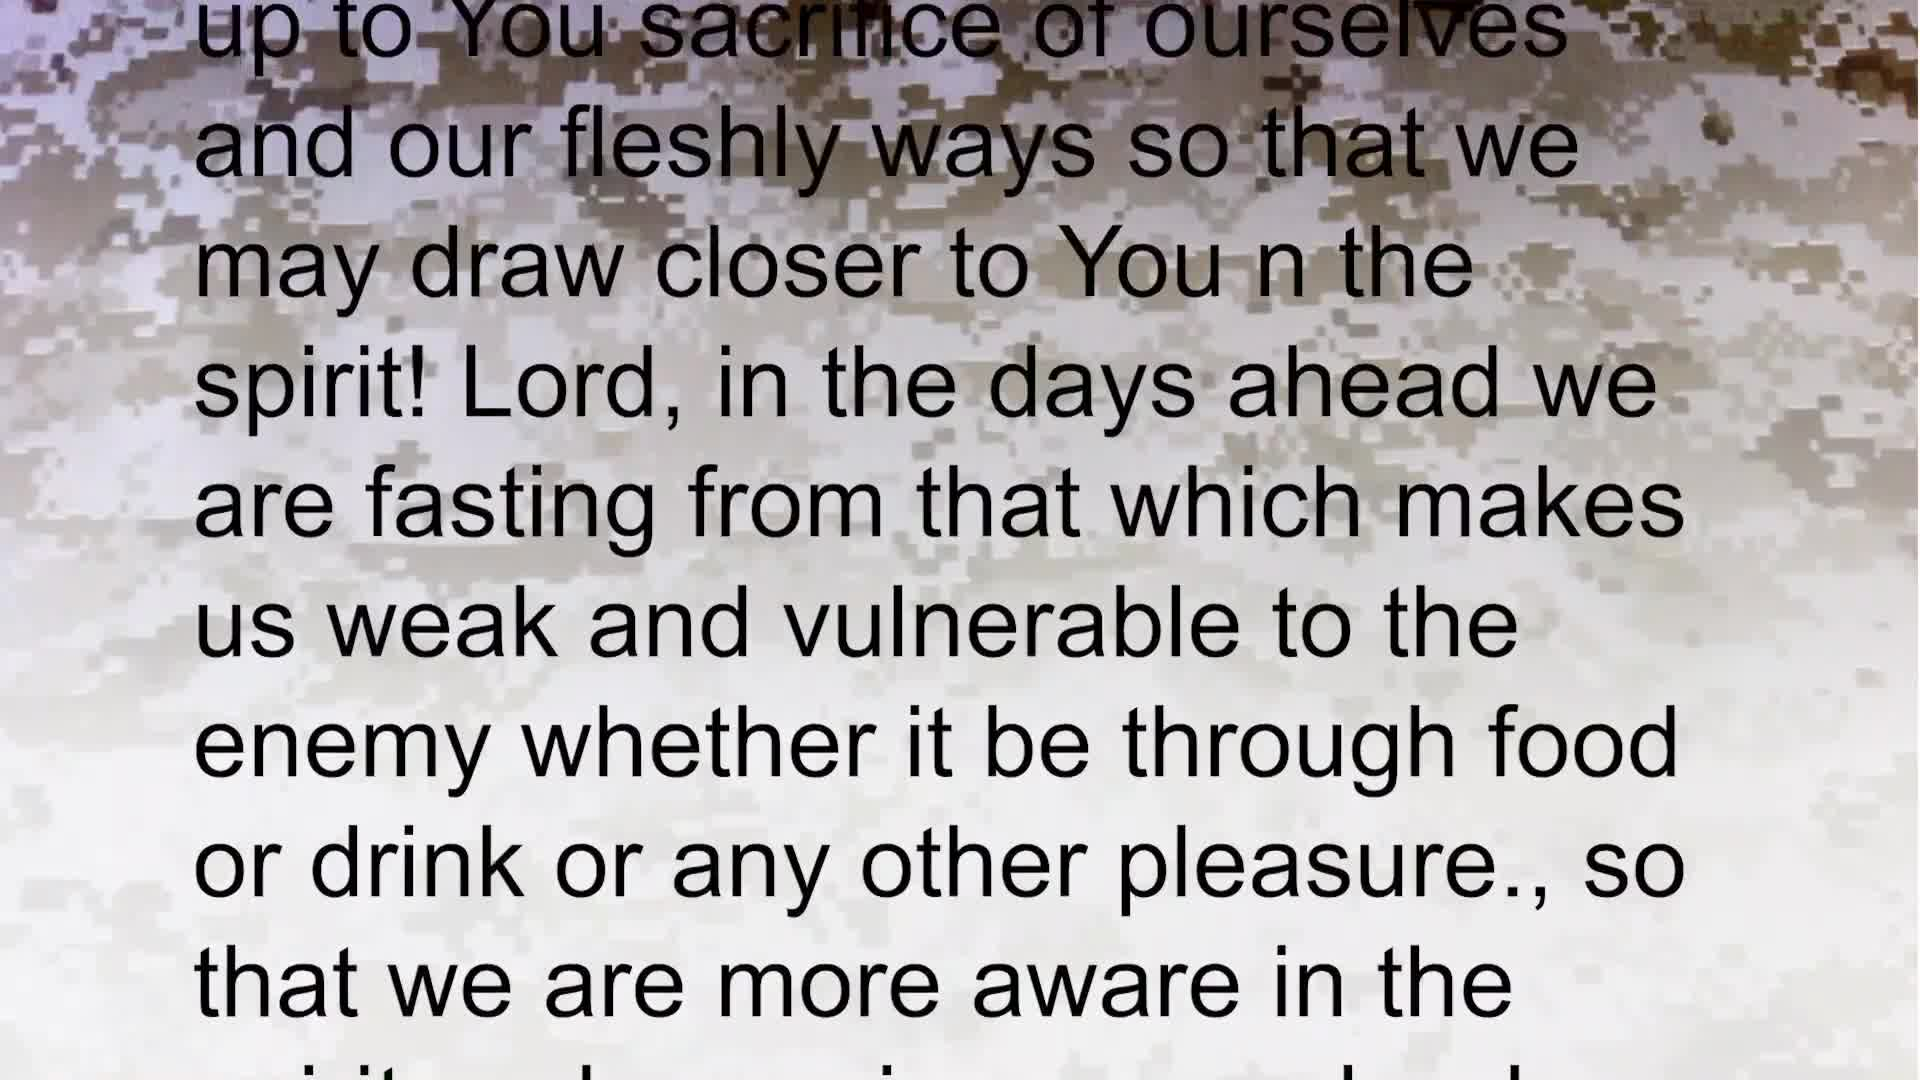 PRAYER FOCUS WE PRAY IN FAITH NOT FEAR AND ONE OF OUR WEAPONS IS FASTING...